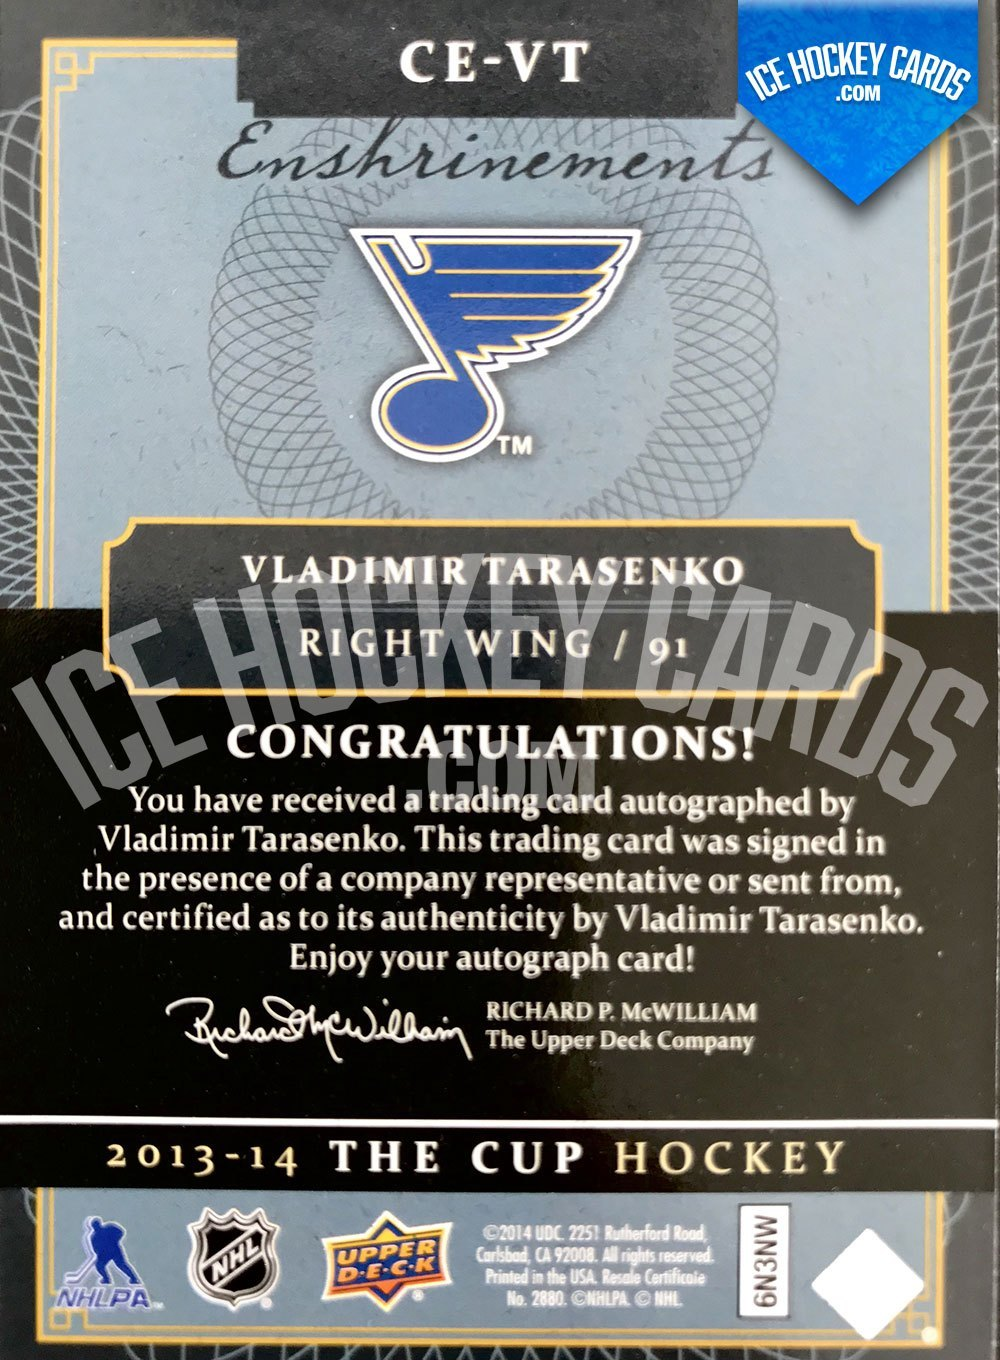 Upper Deck - The Cup 2013-14 - Vladimir Tarasenko Enshrinements Authentic Autograph Card back